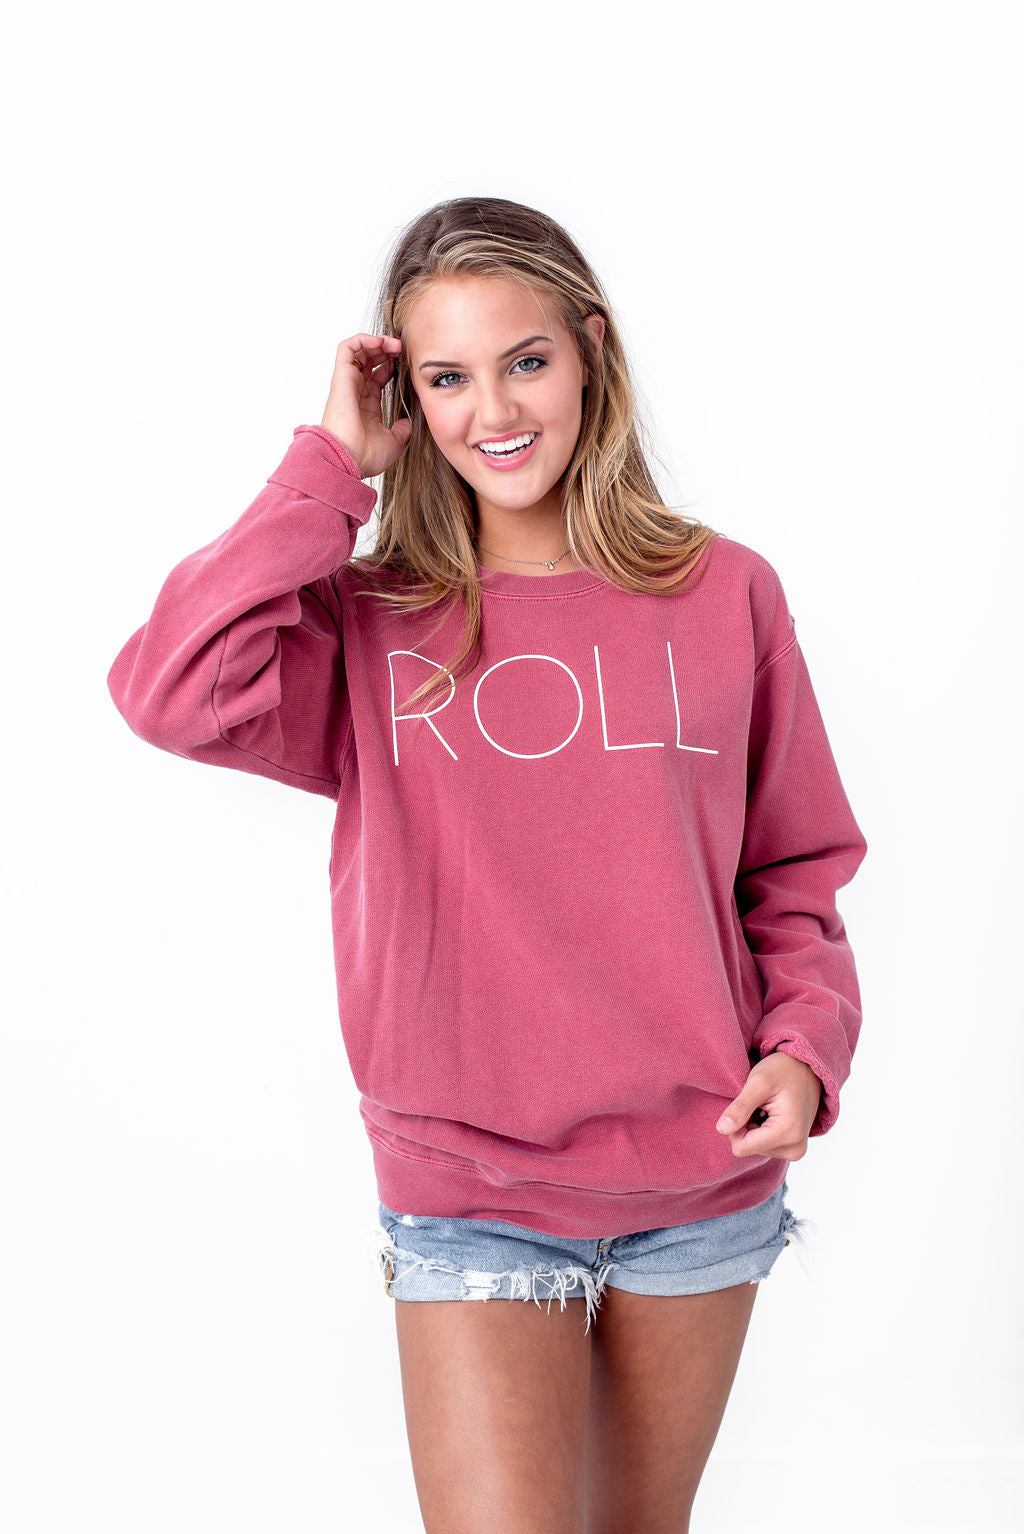 Roll Sweatshirt on Crimson